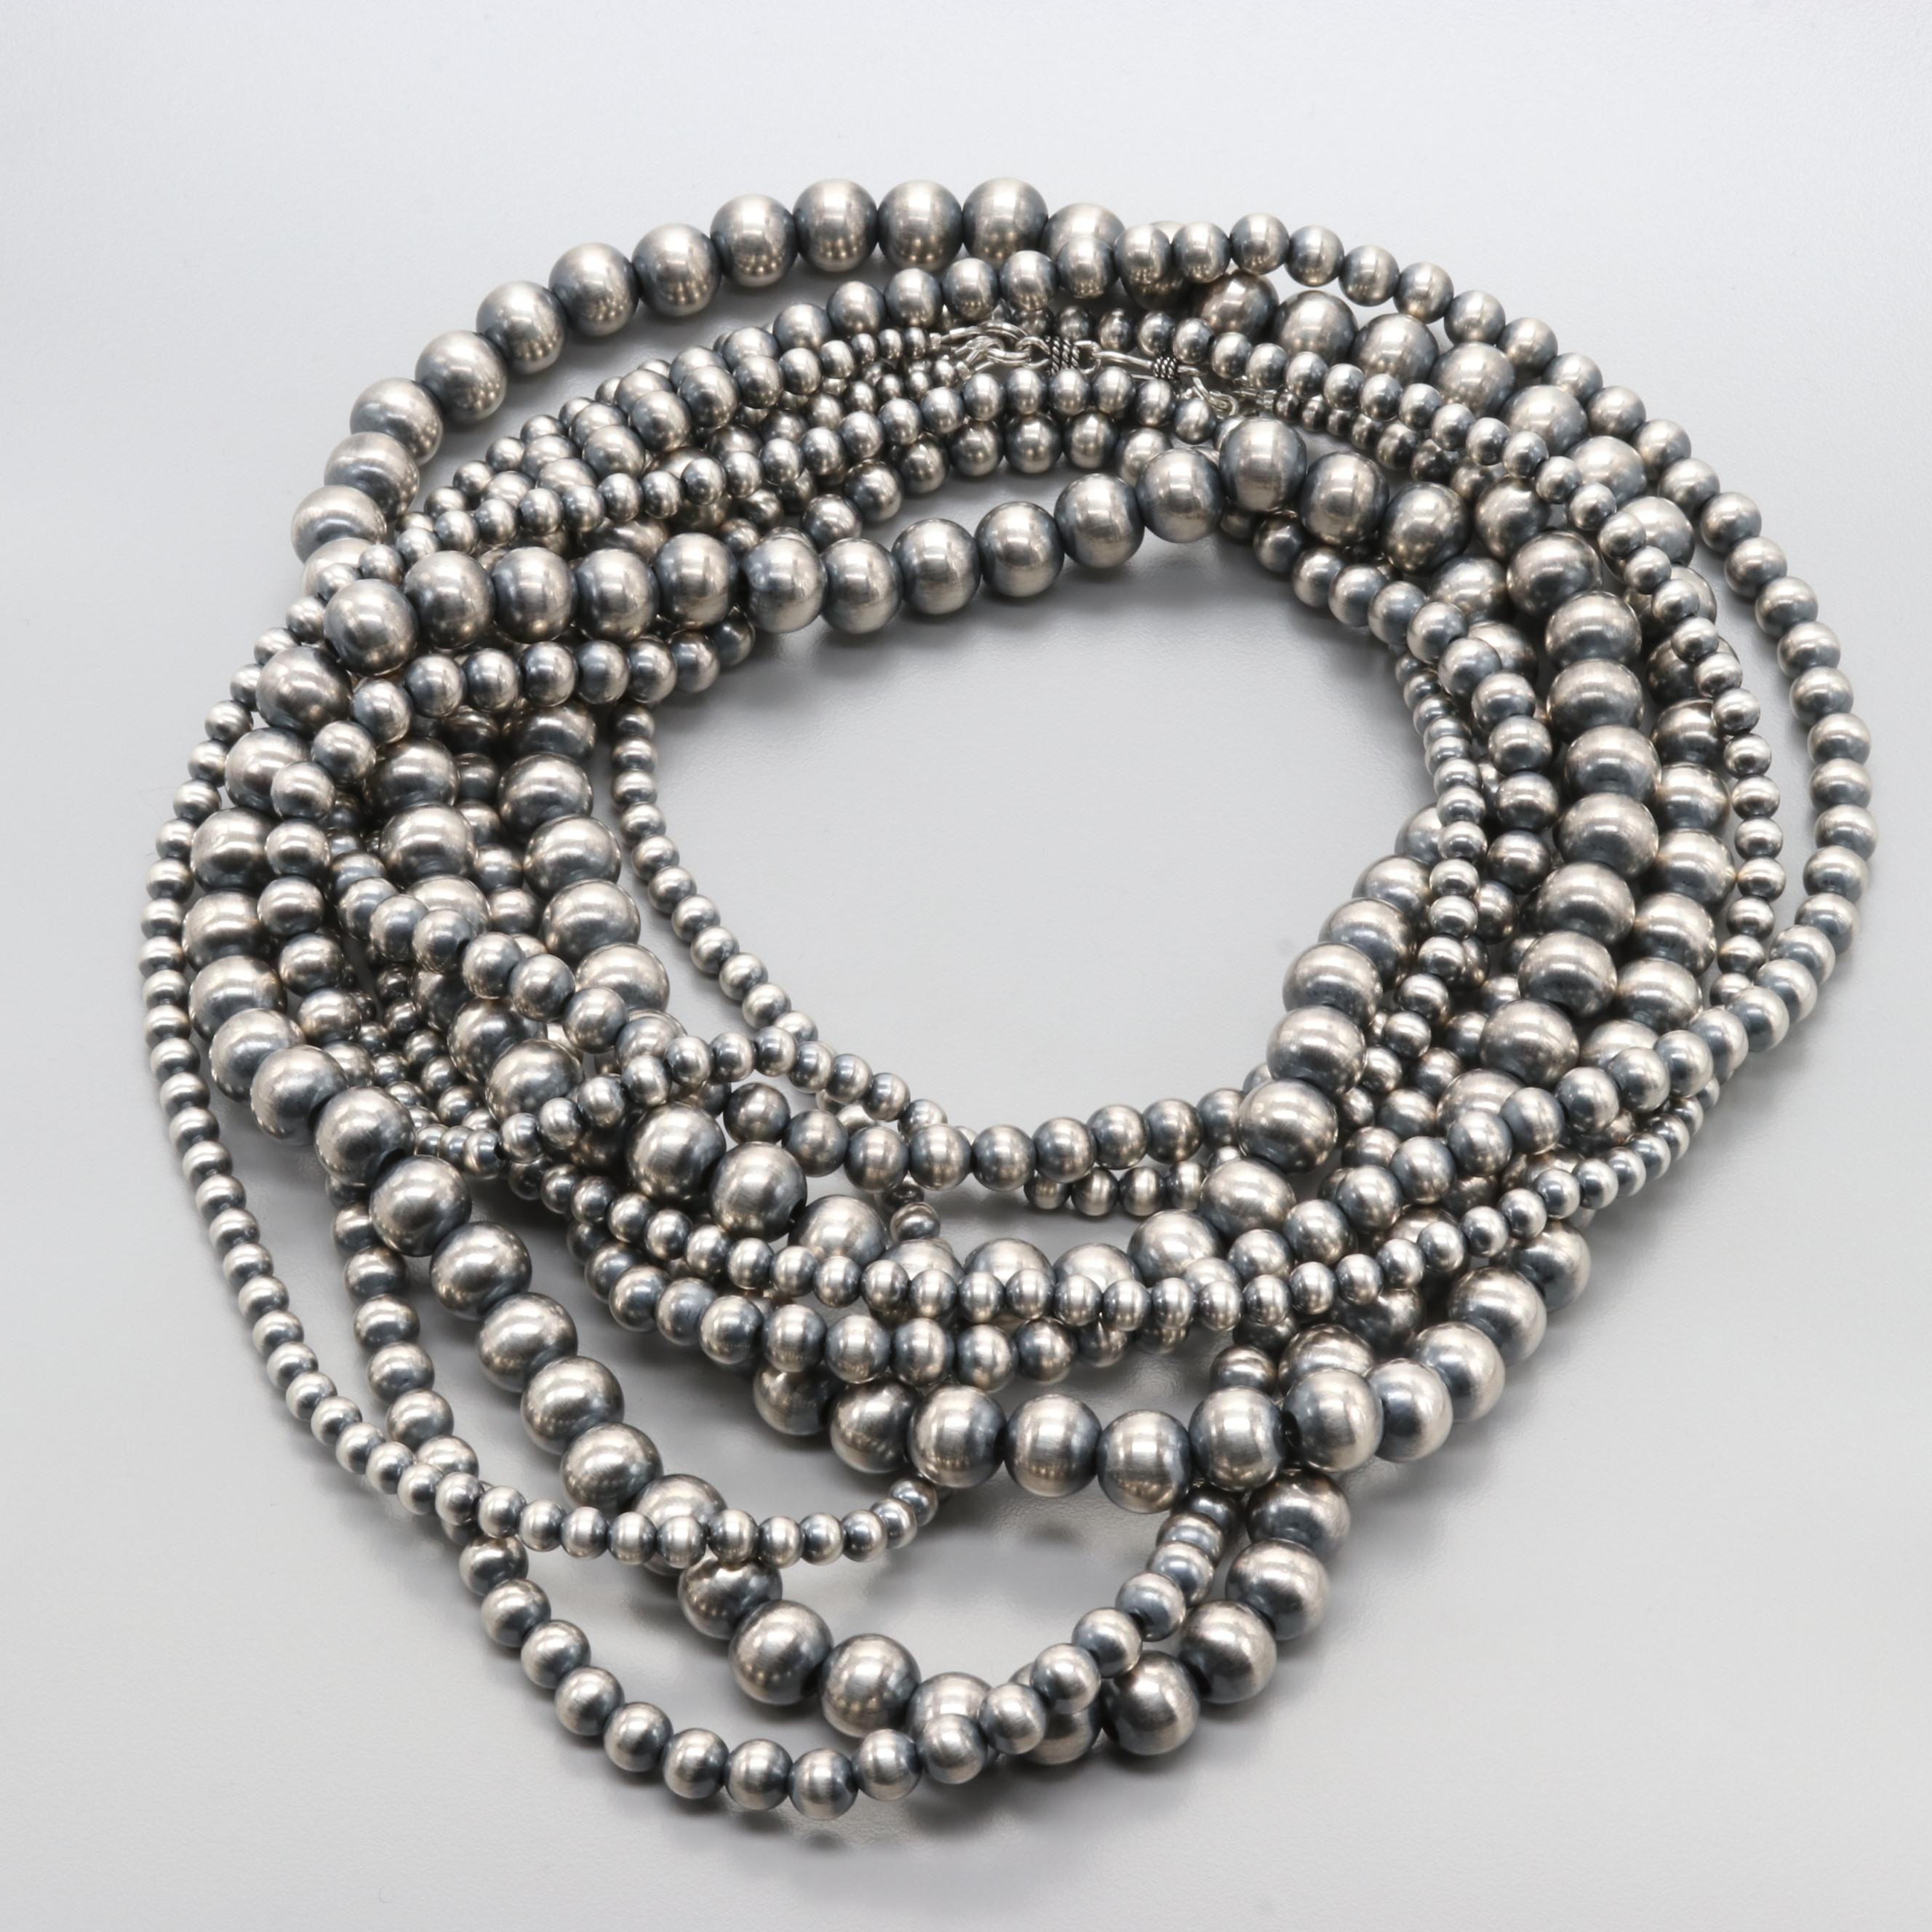 Southwest Style Sterling Silver Graduated Bead Necklace